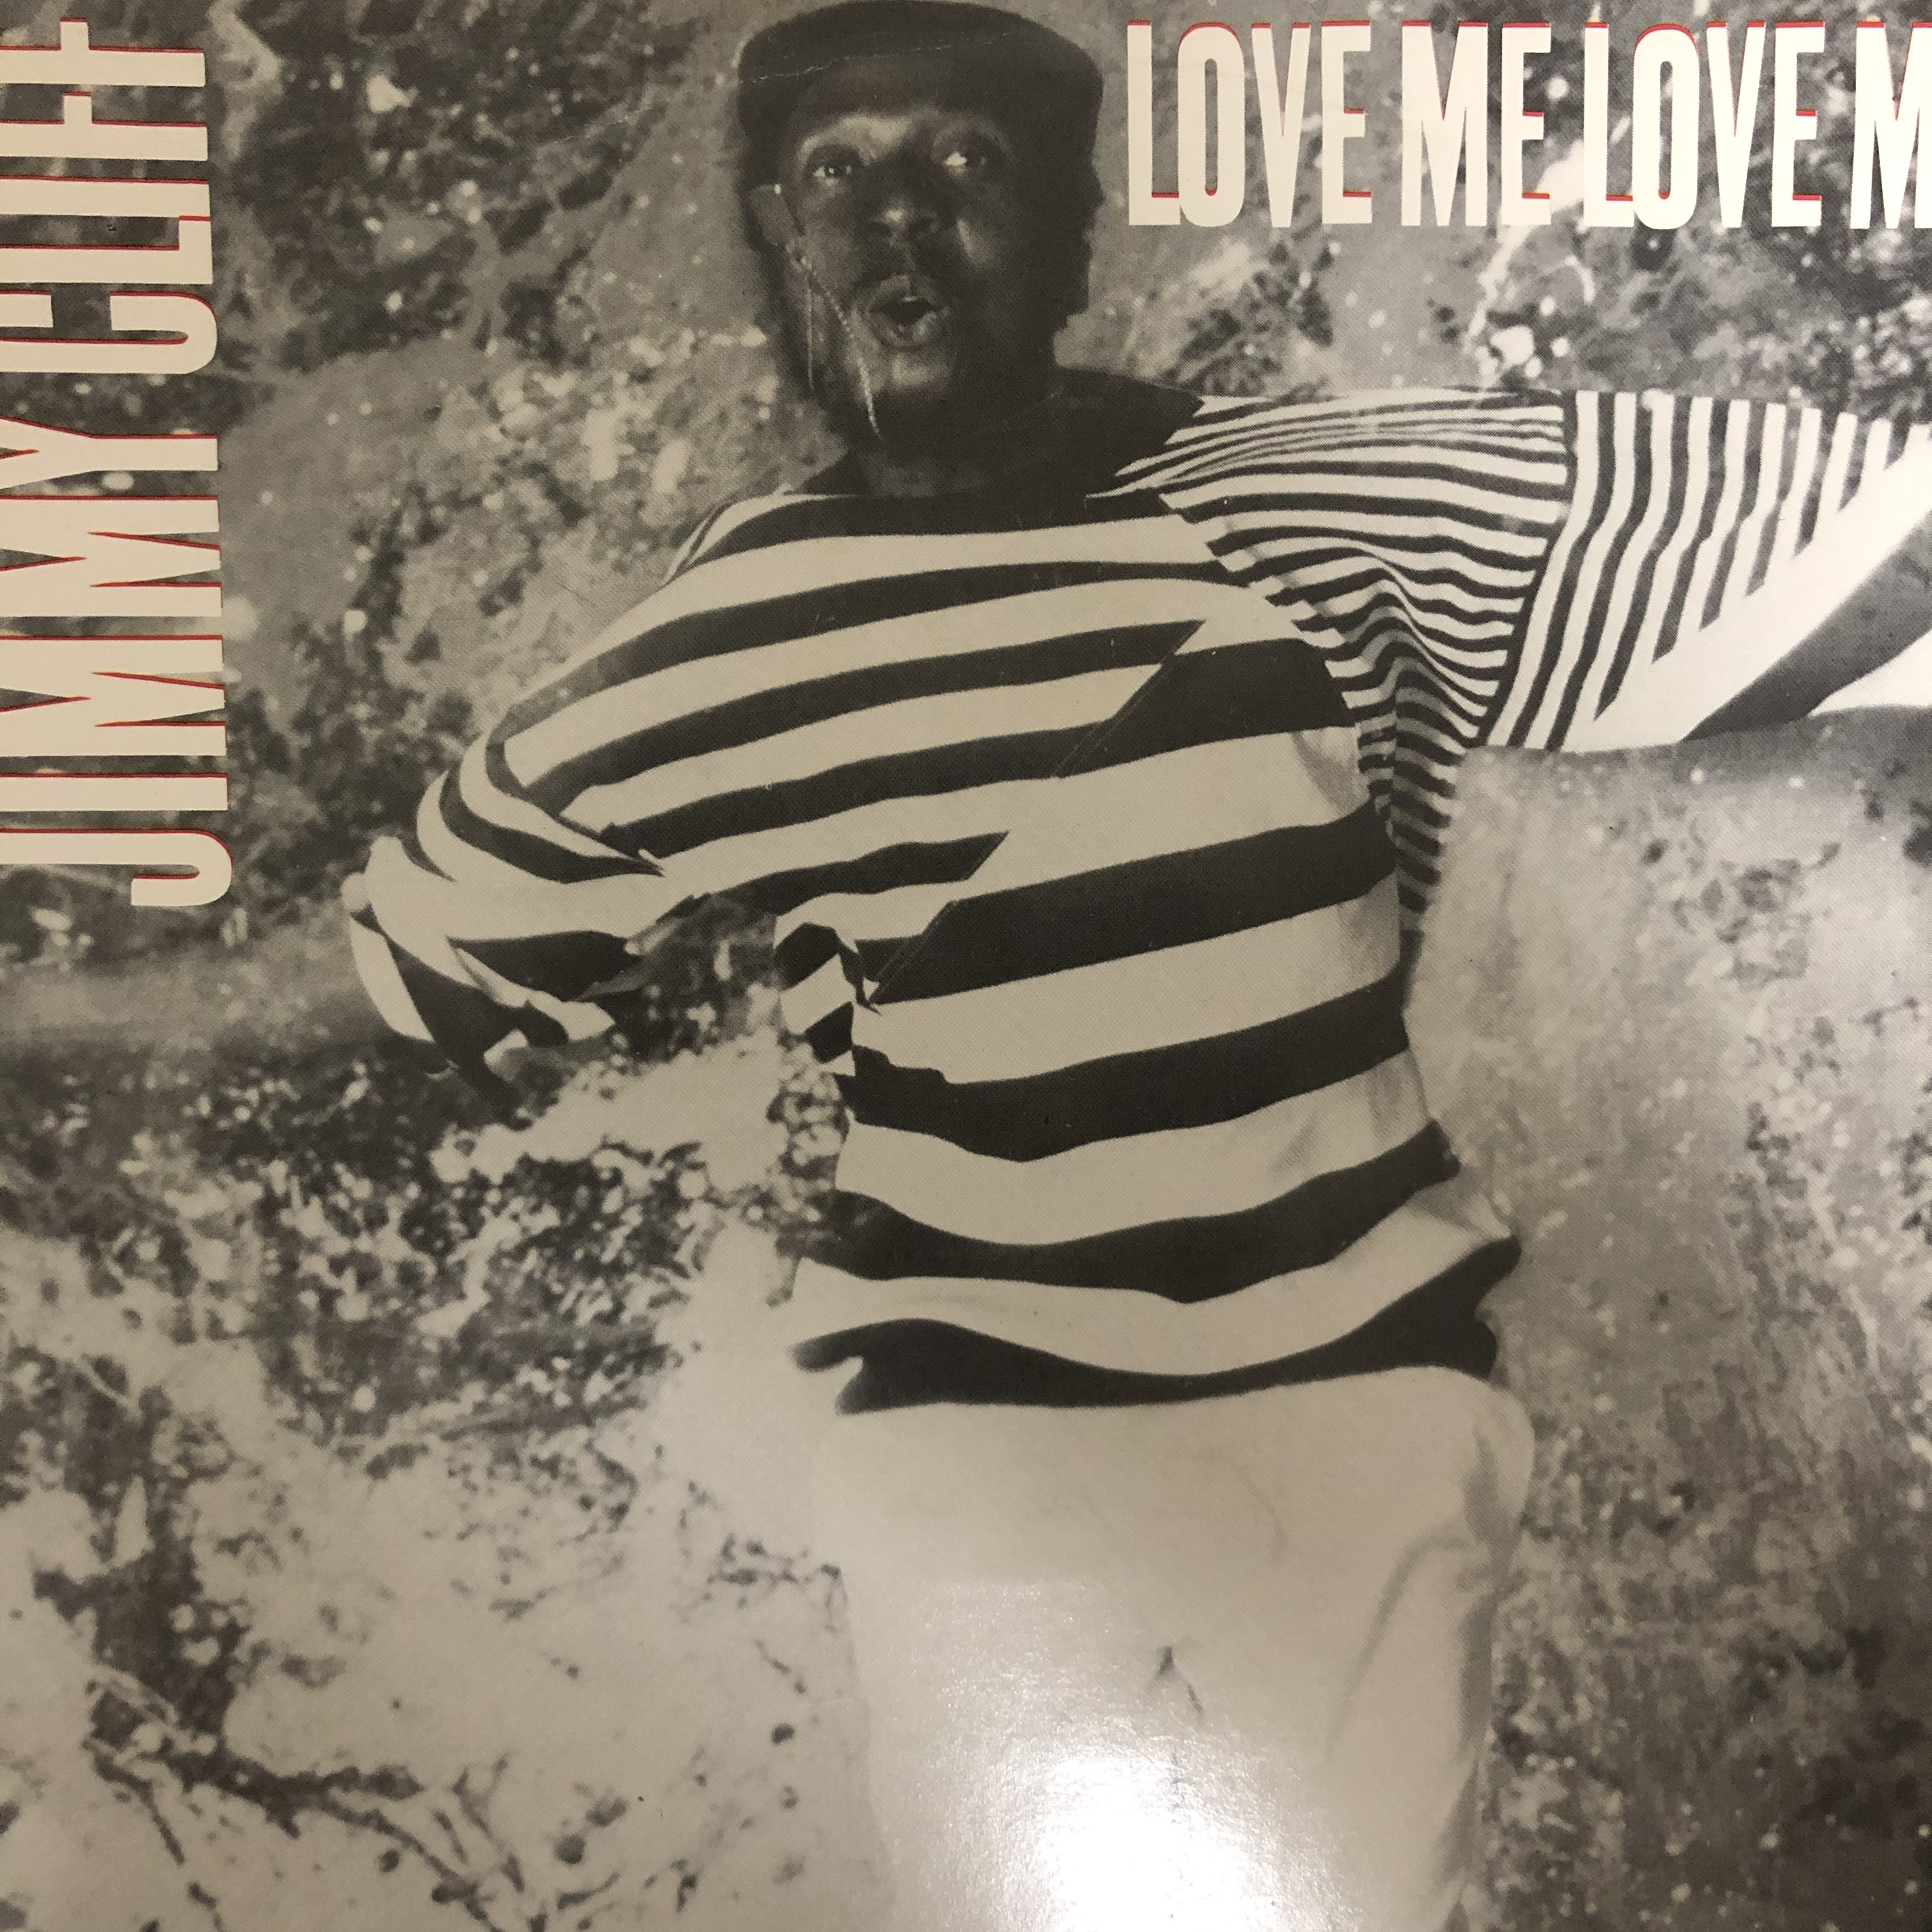 Jimmy Cliff - Love Me Love Me【7-20496】